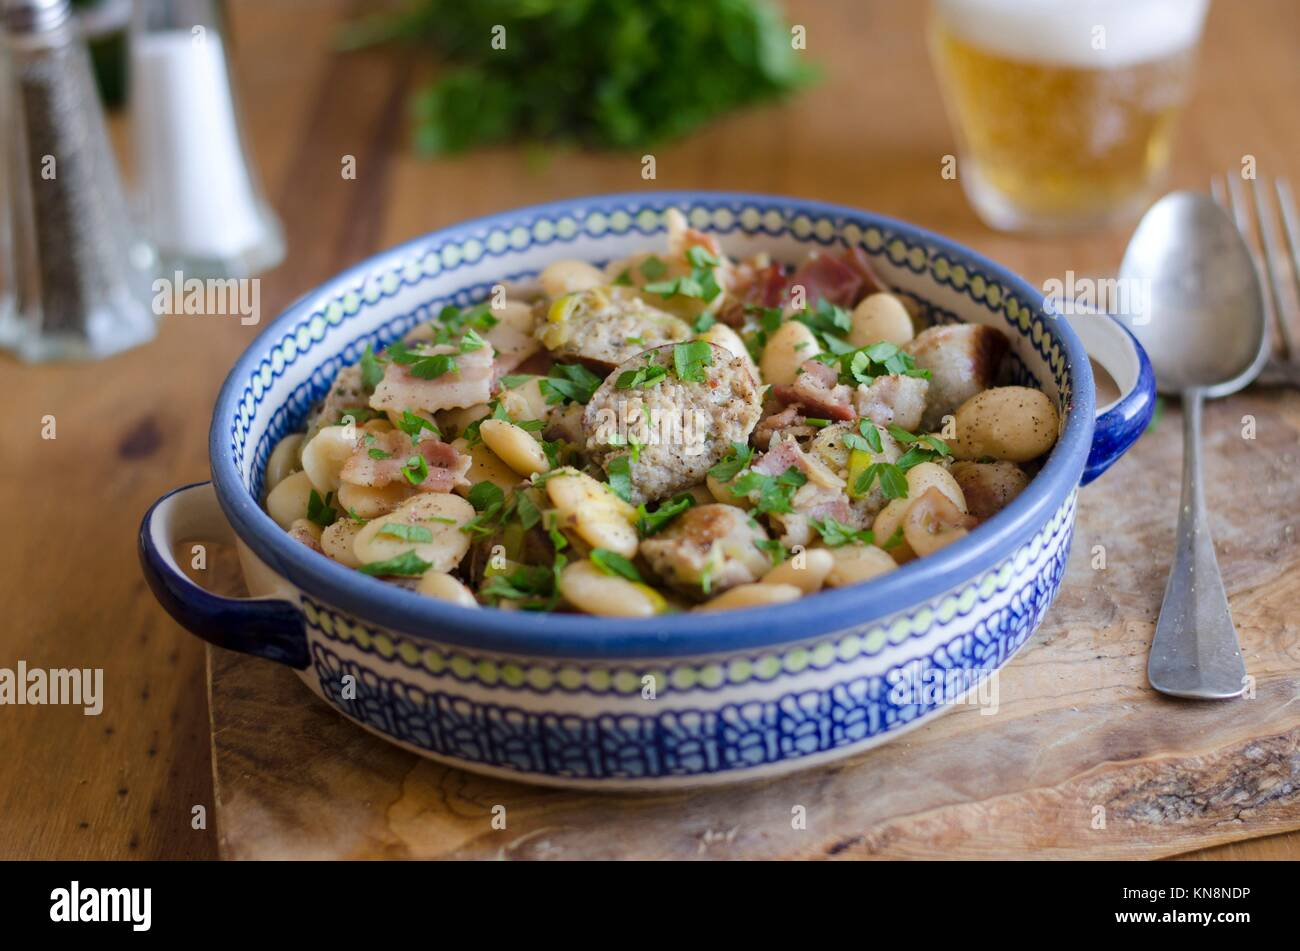 Cumberland sausage and butter bean casserole. - Stock Image